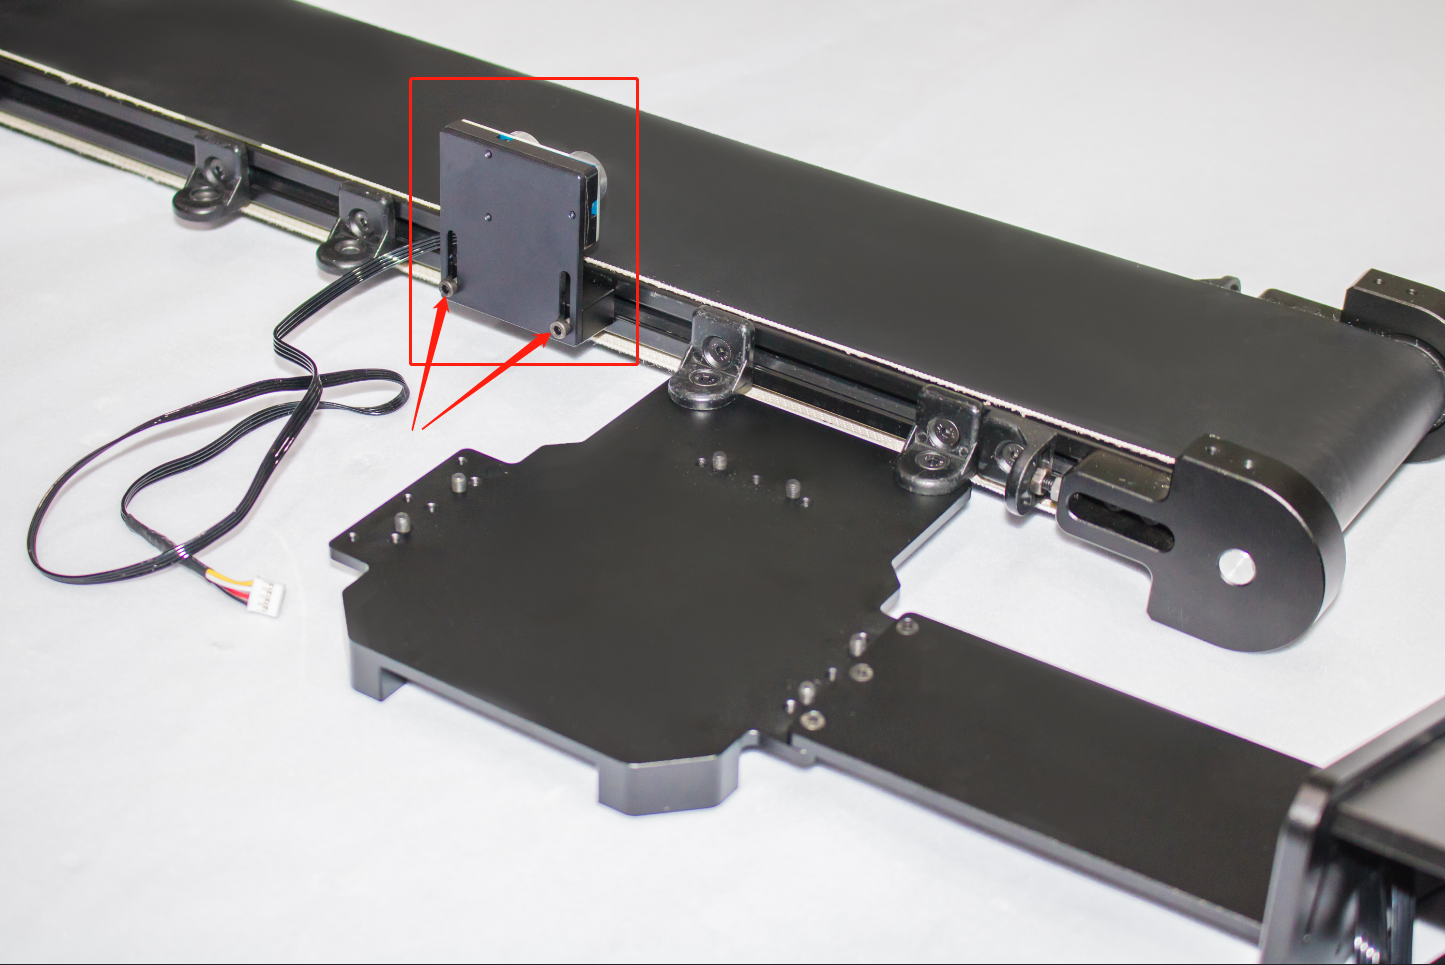 Picture of Install Ultrasonic Sensor: Fix the Ultrasonic Sensor on the Conveyor Belt